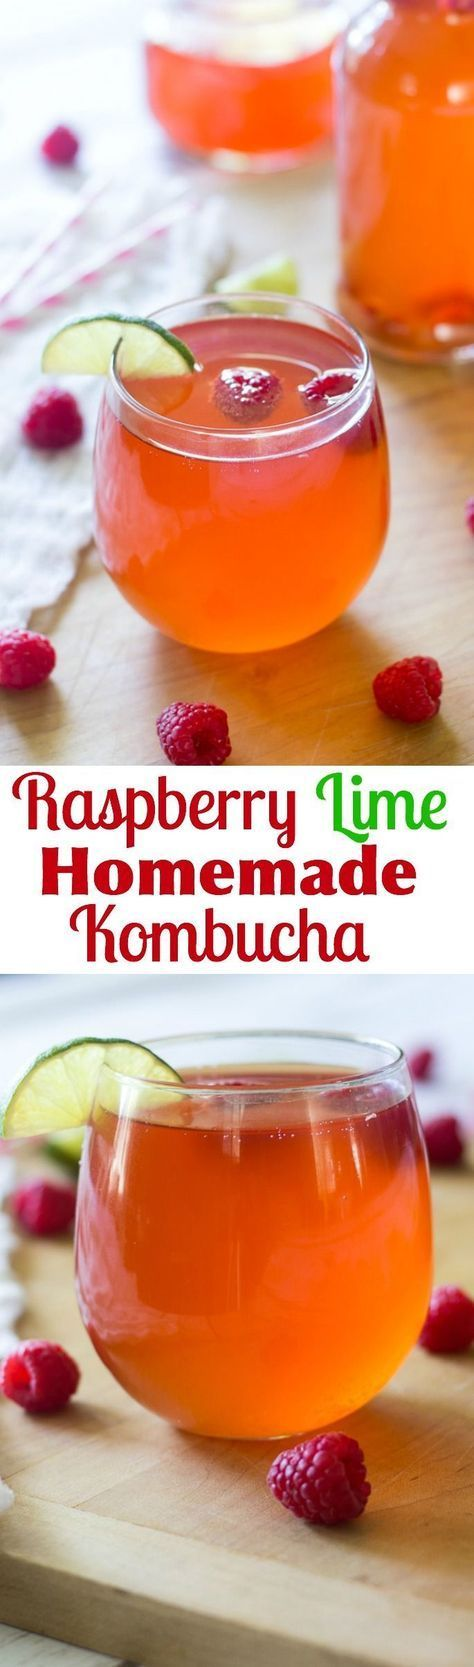 Raspberry Lime Homemade Kombucha - Paleo, Whole30 friendly, vegan and tons of health benefits